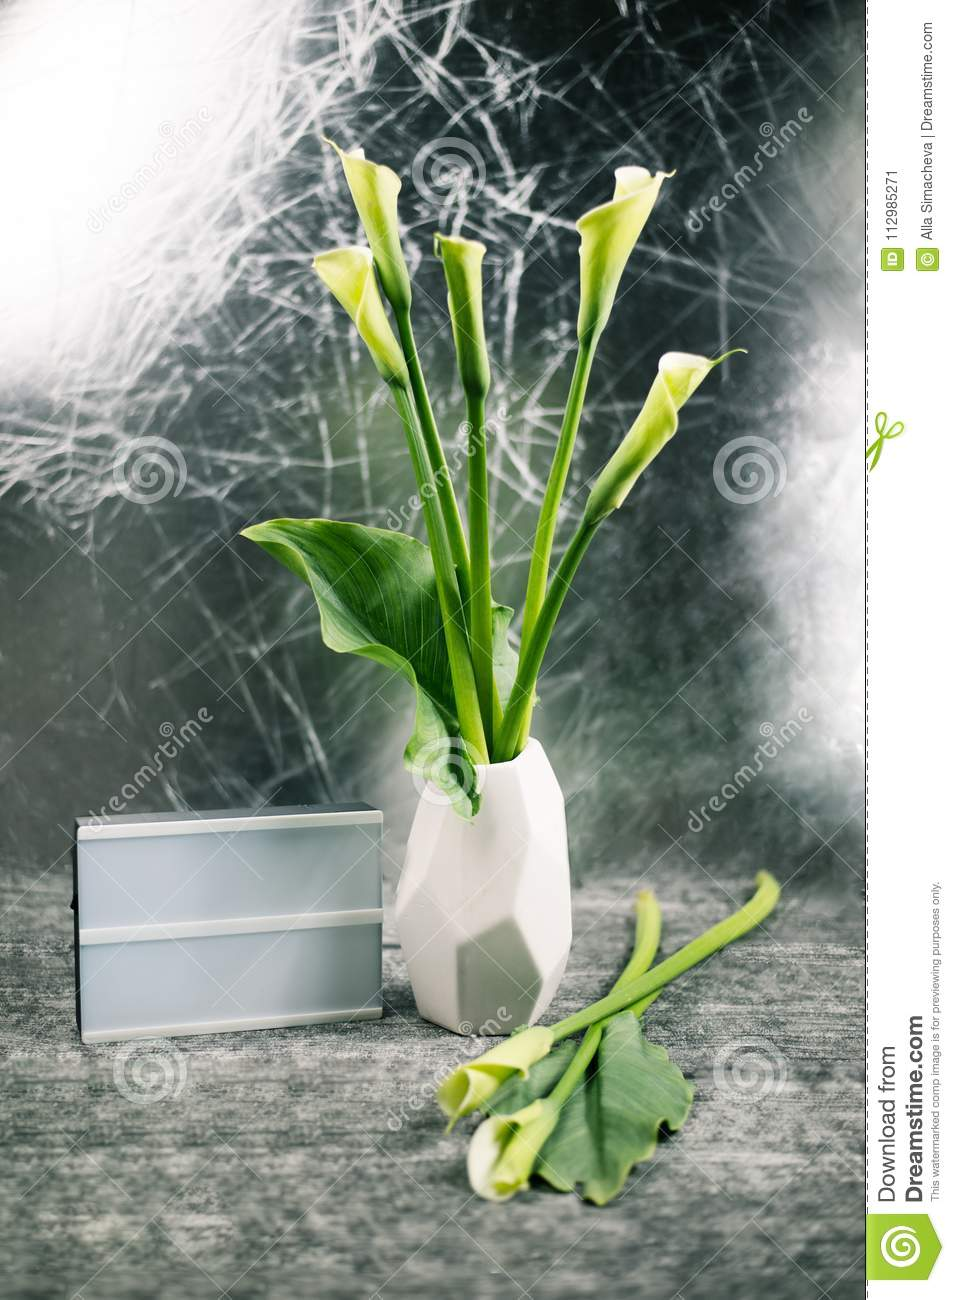 Calla flowers in a vase